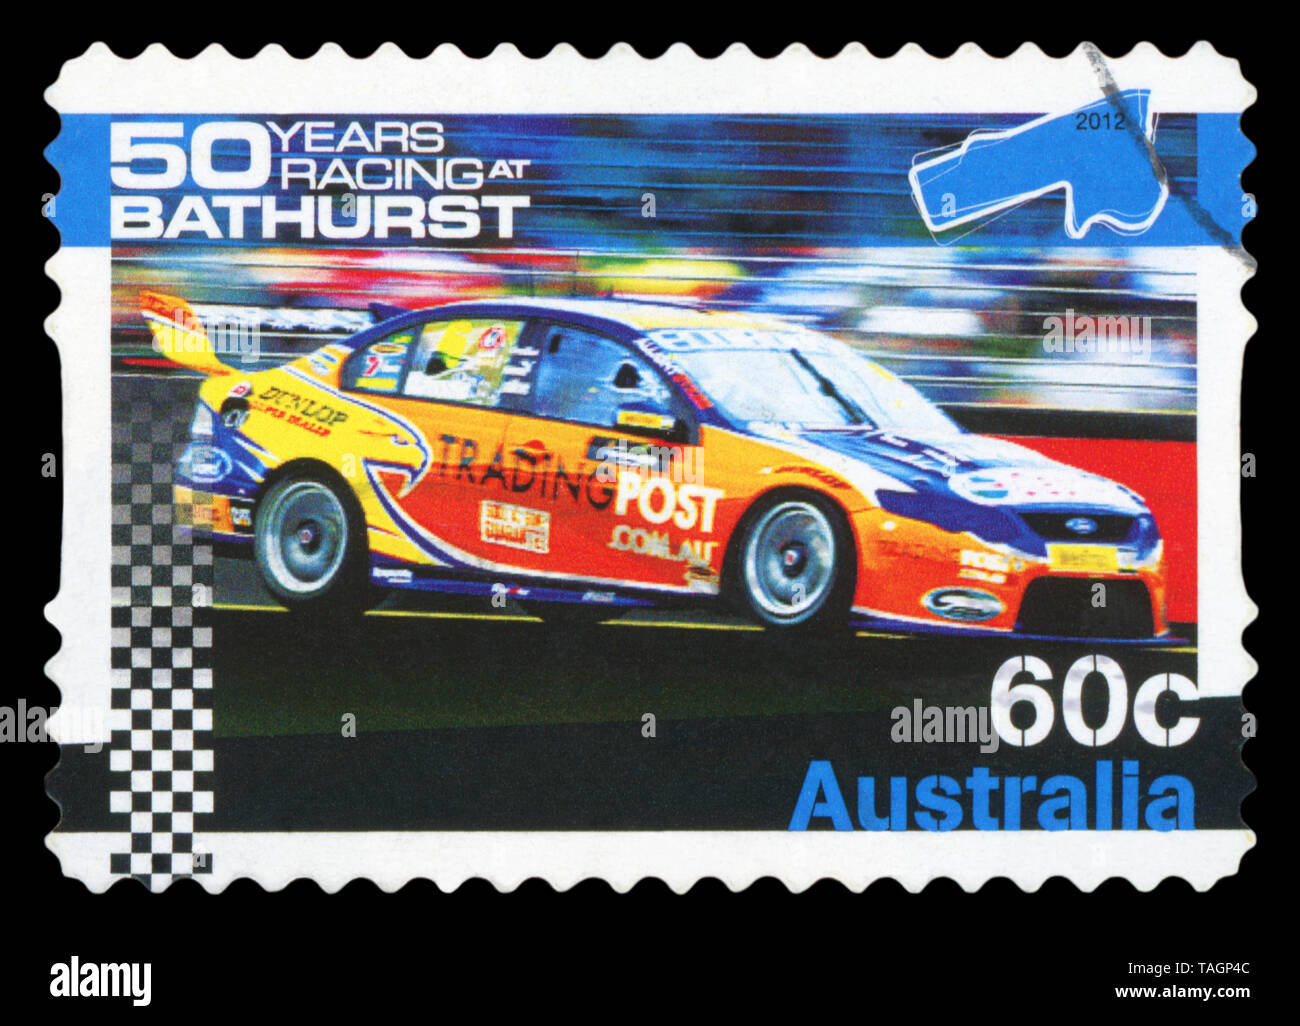 AUSTRALIA - CIRCA 2012: A stamp printed in Australia shows the 50 years racing at BATHURST, series, circa 2012. - Stock Image